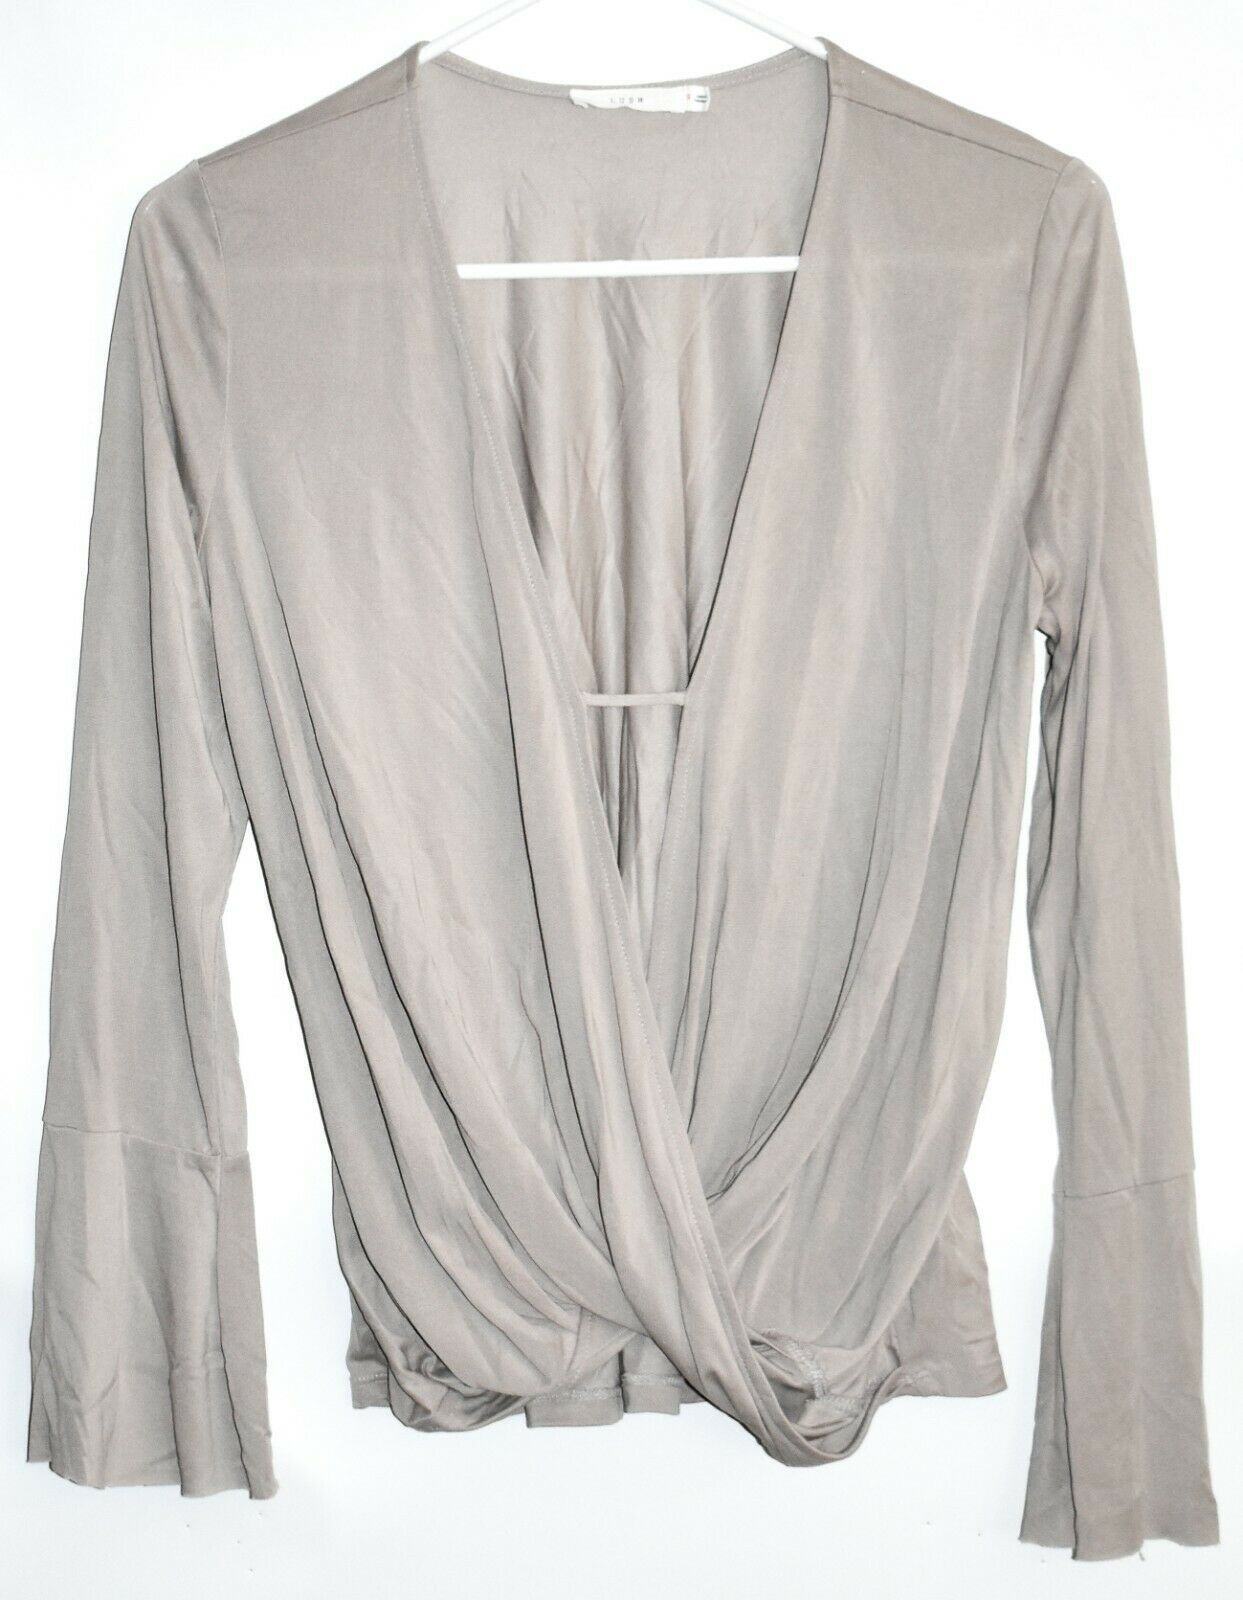 Lush T11892-I Long-Sleeved Beige Model Blend Blouse Top Size S